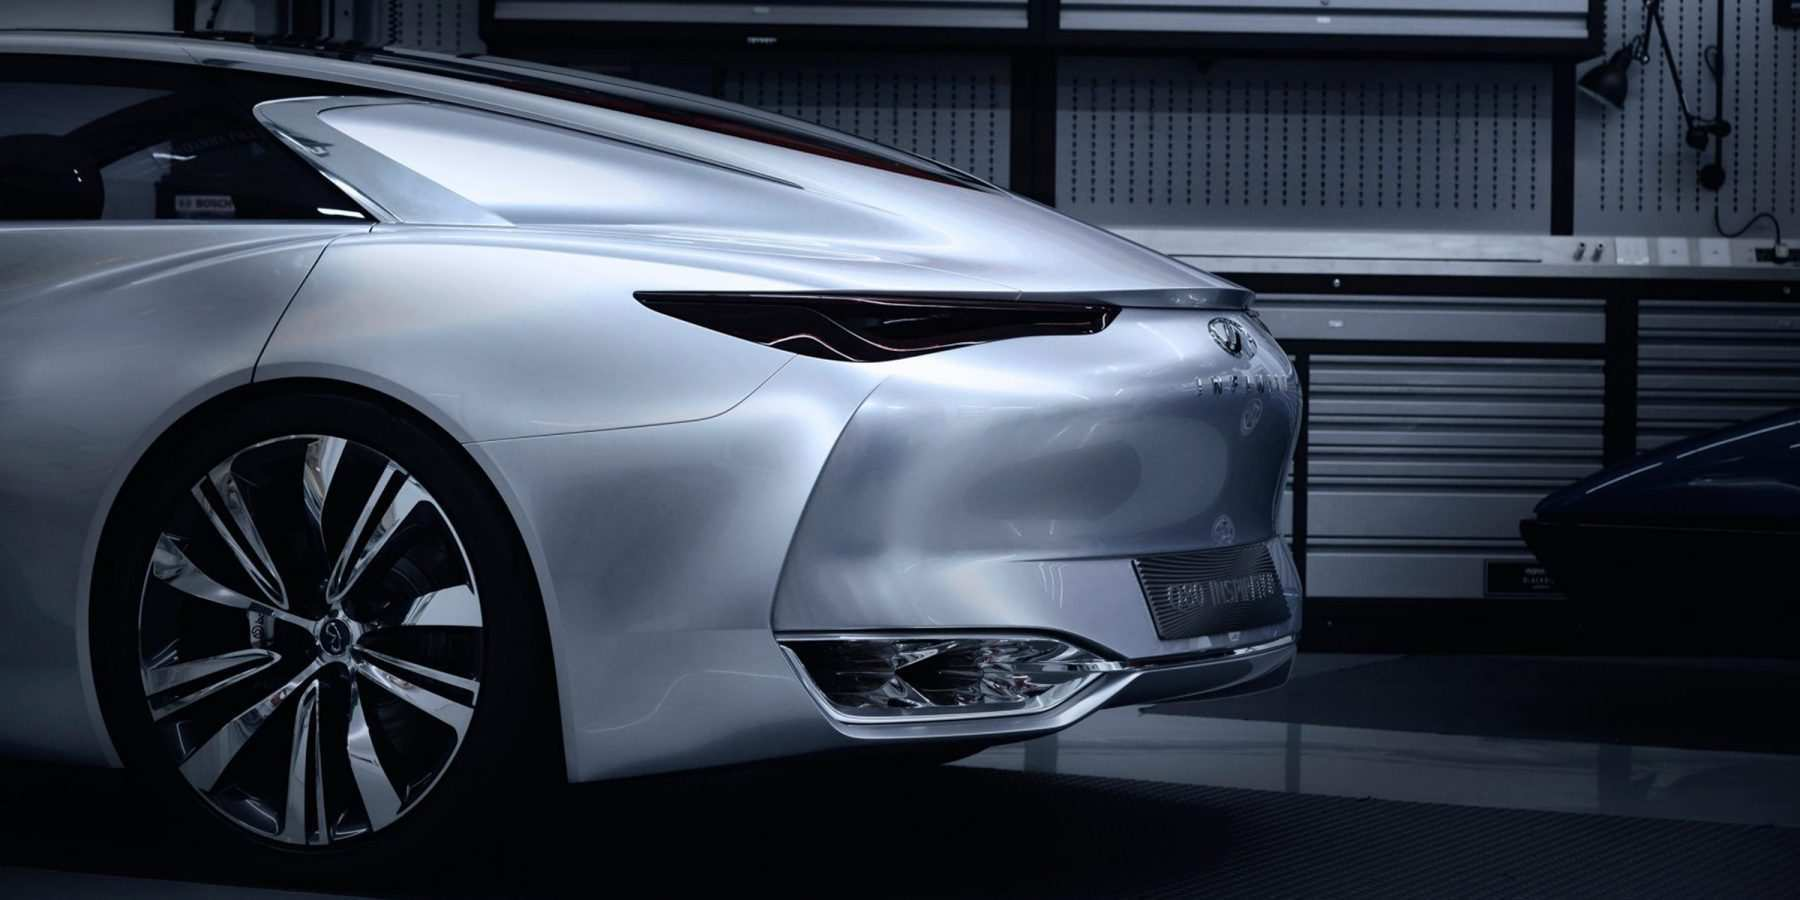 21 Concept of 2020 Infiniti Q80 New Review for 2020 Infiniti Q80